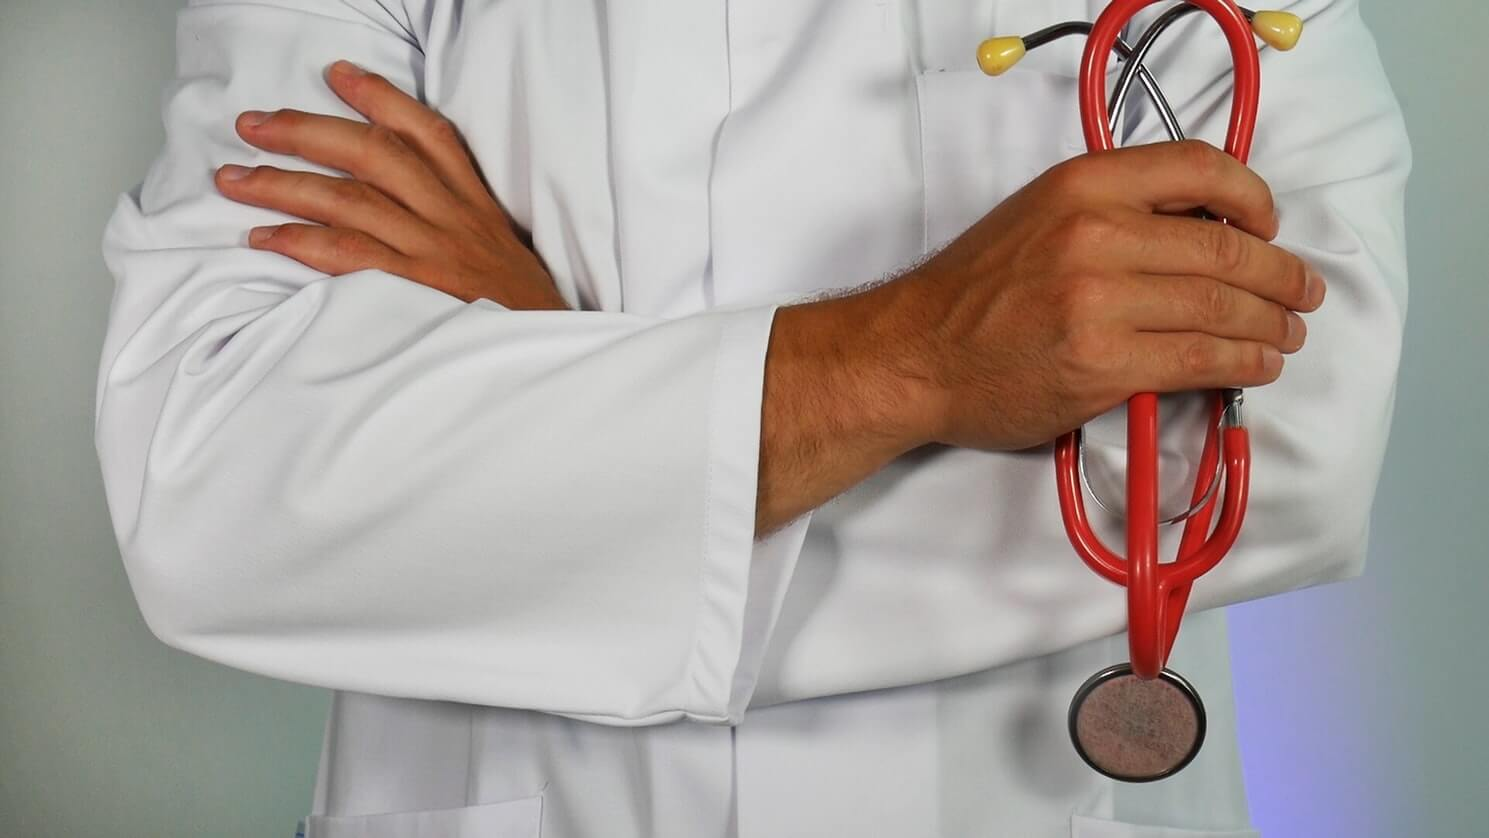 A doctor who can help qualified individuals on medicare plans